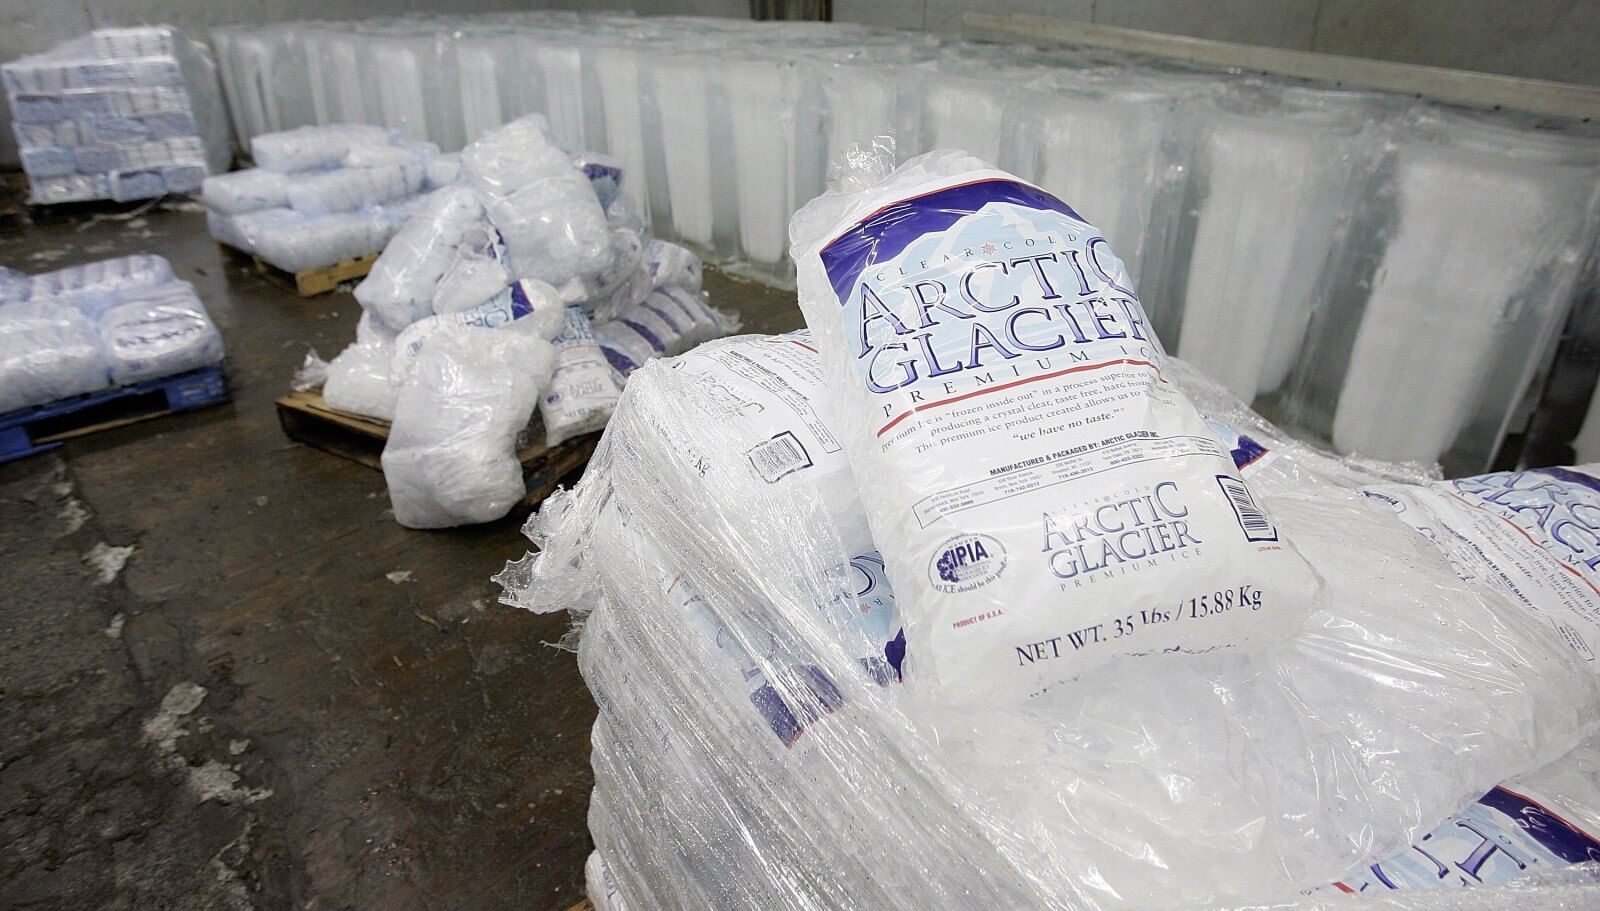 Why in the world are fast food restaurants selling bags of ice?